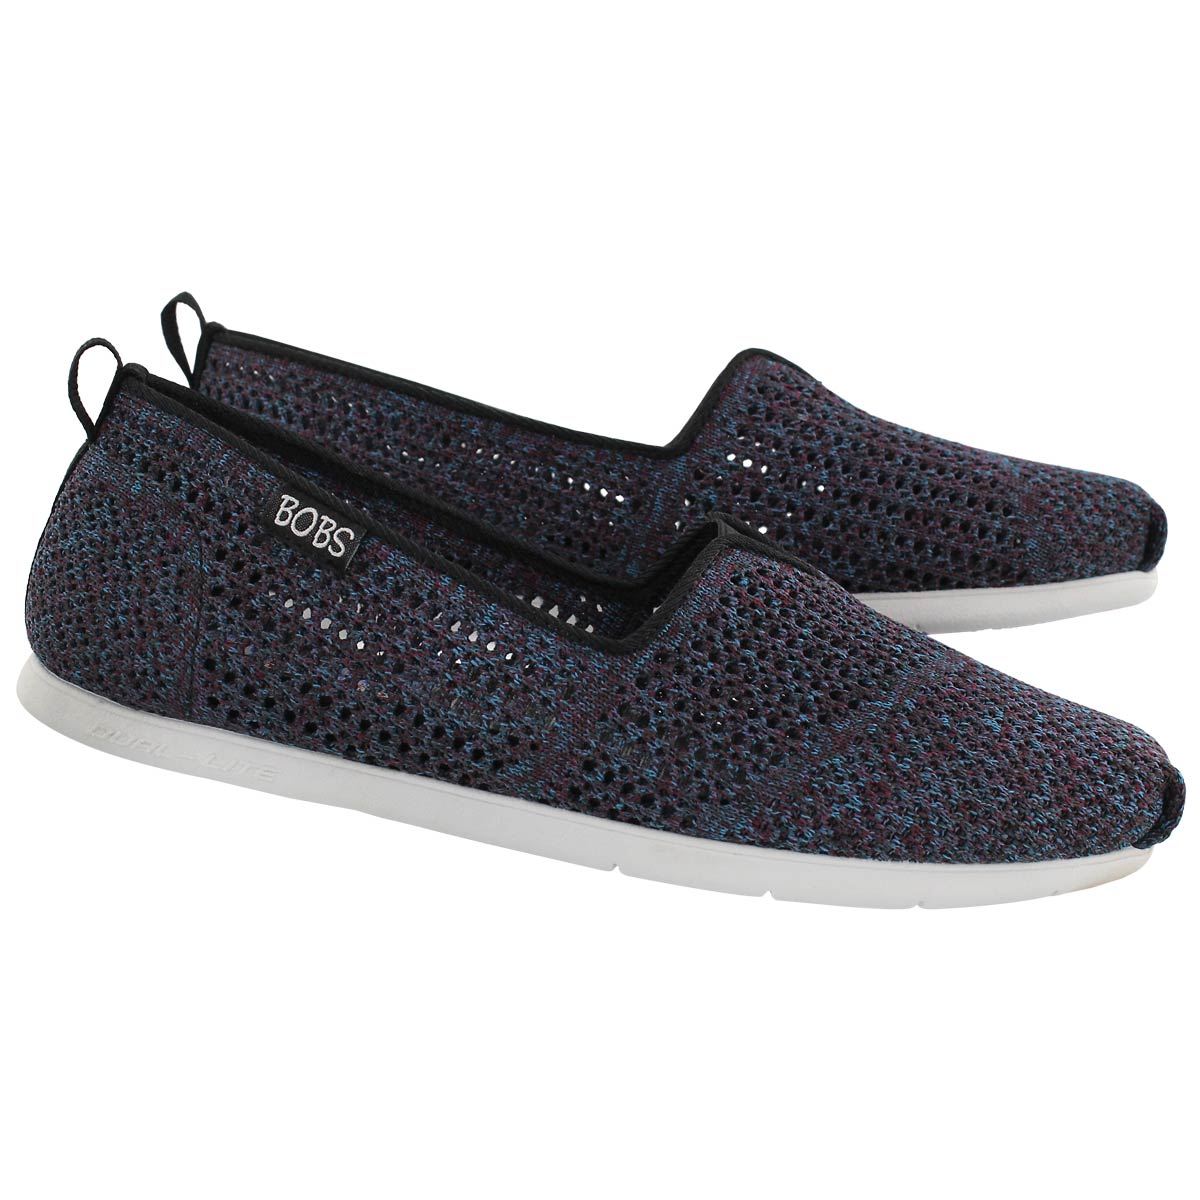 Lds Bobs Plush Lite Be Cool blk slipon